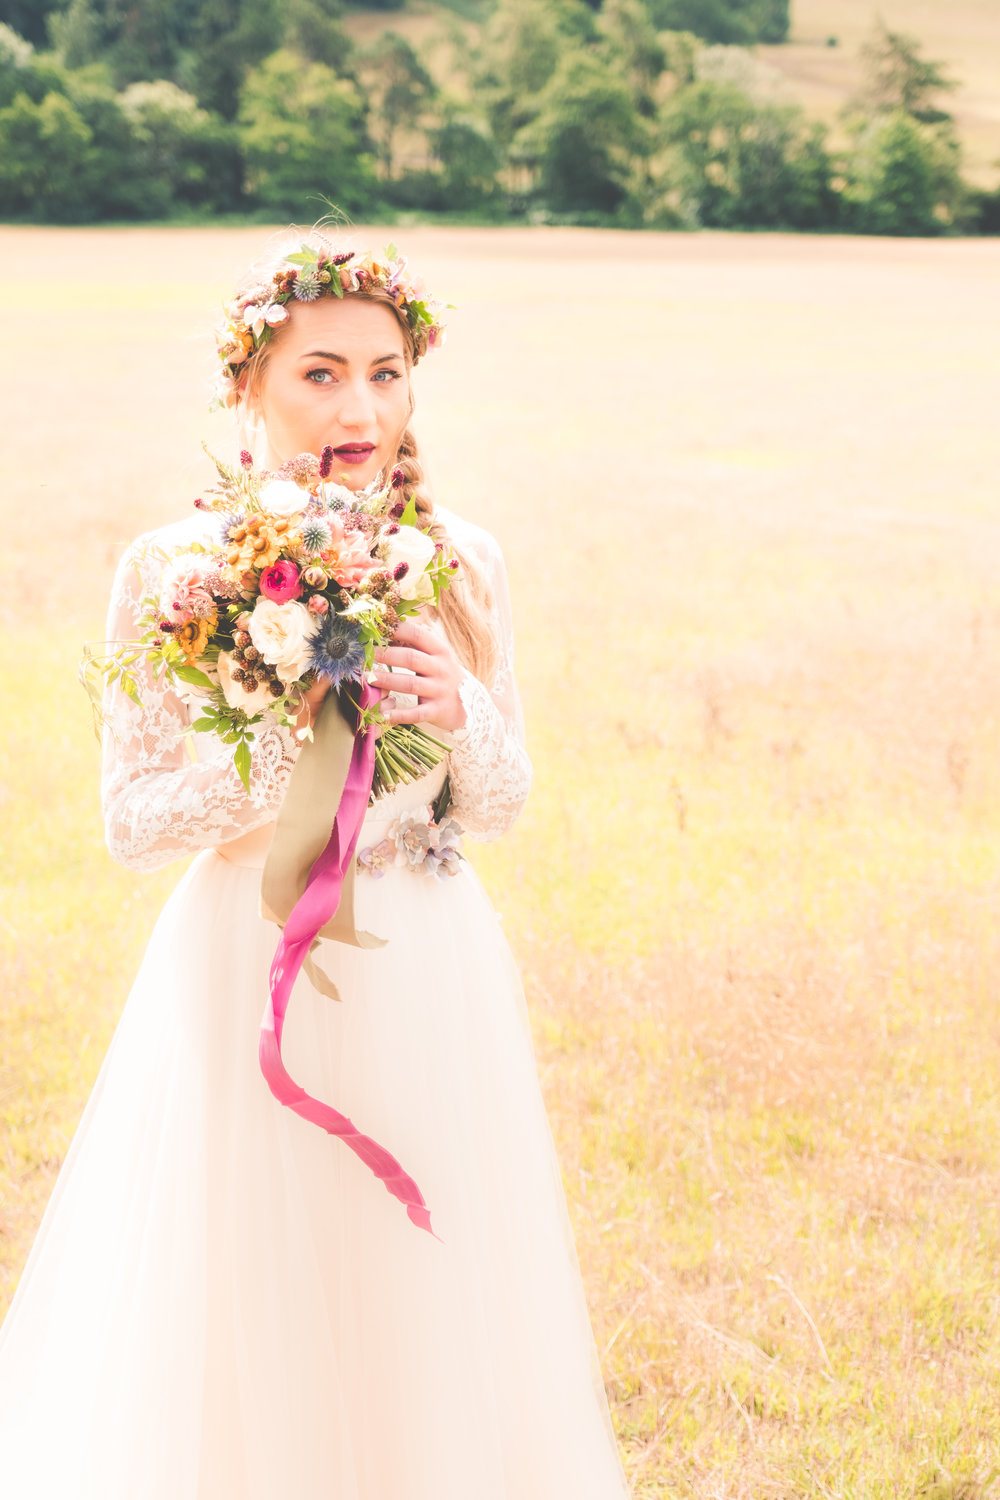 Nanteo's Styled Shoot - Images by Jon Turtle - Photographer-22.jpg